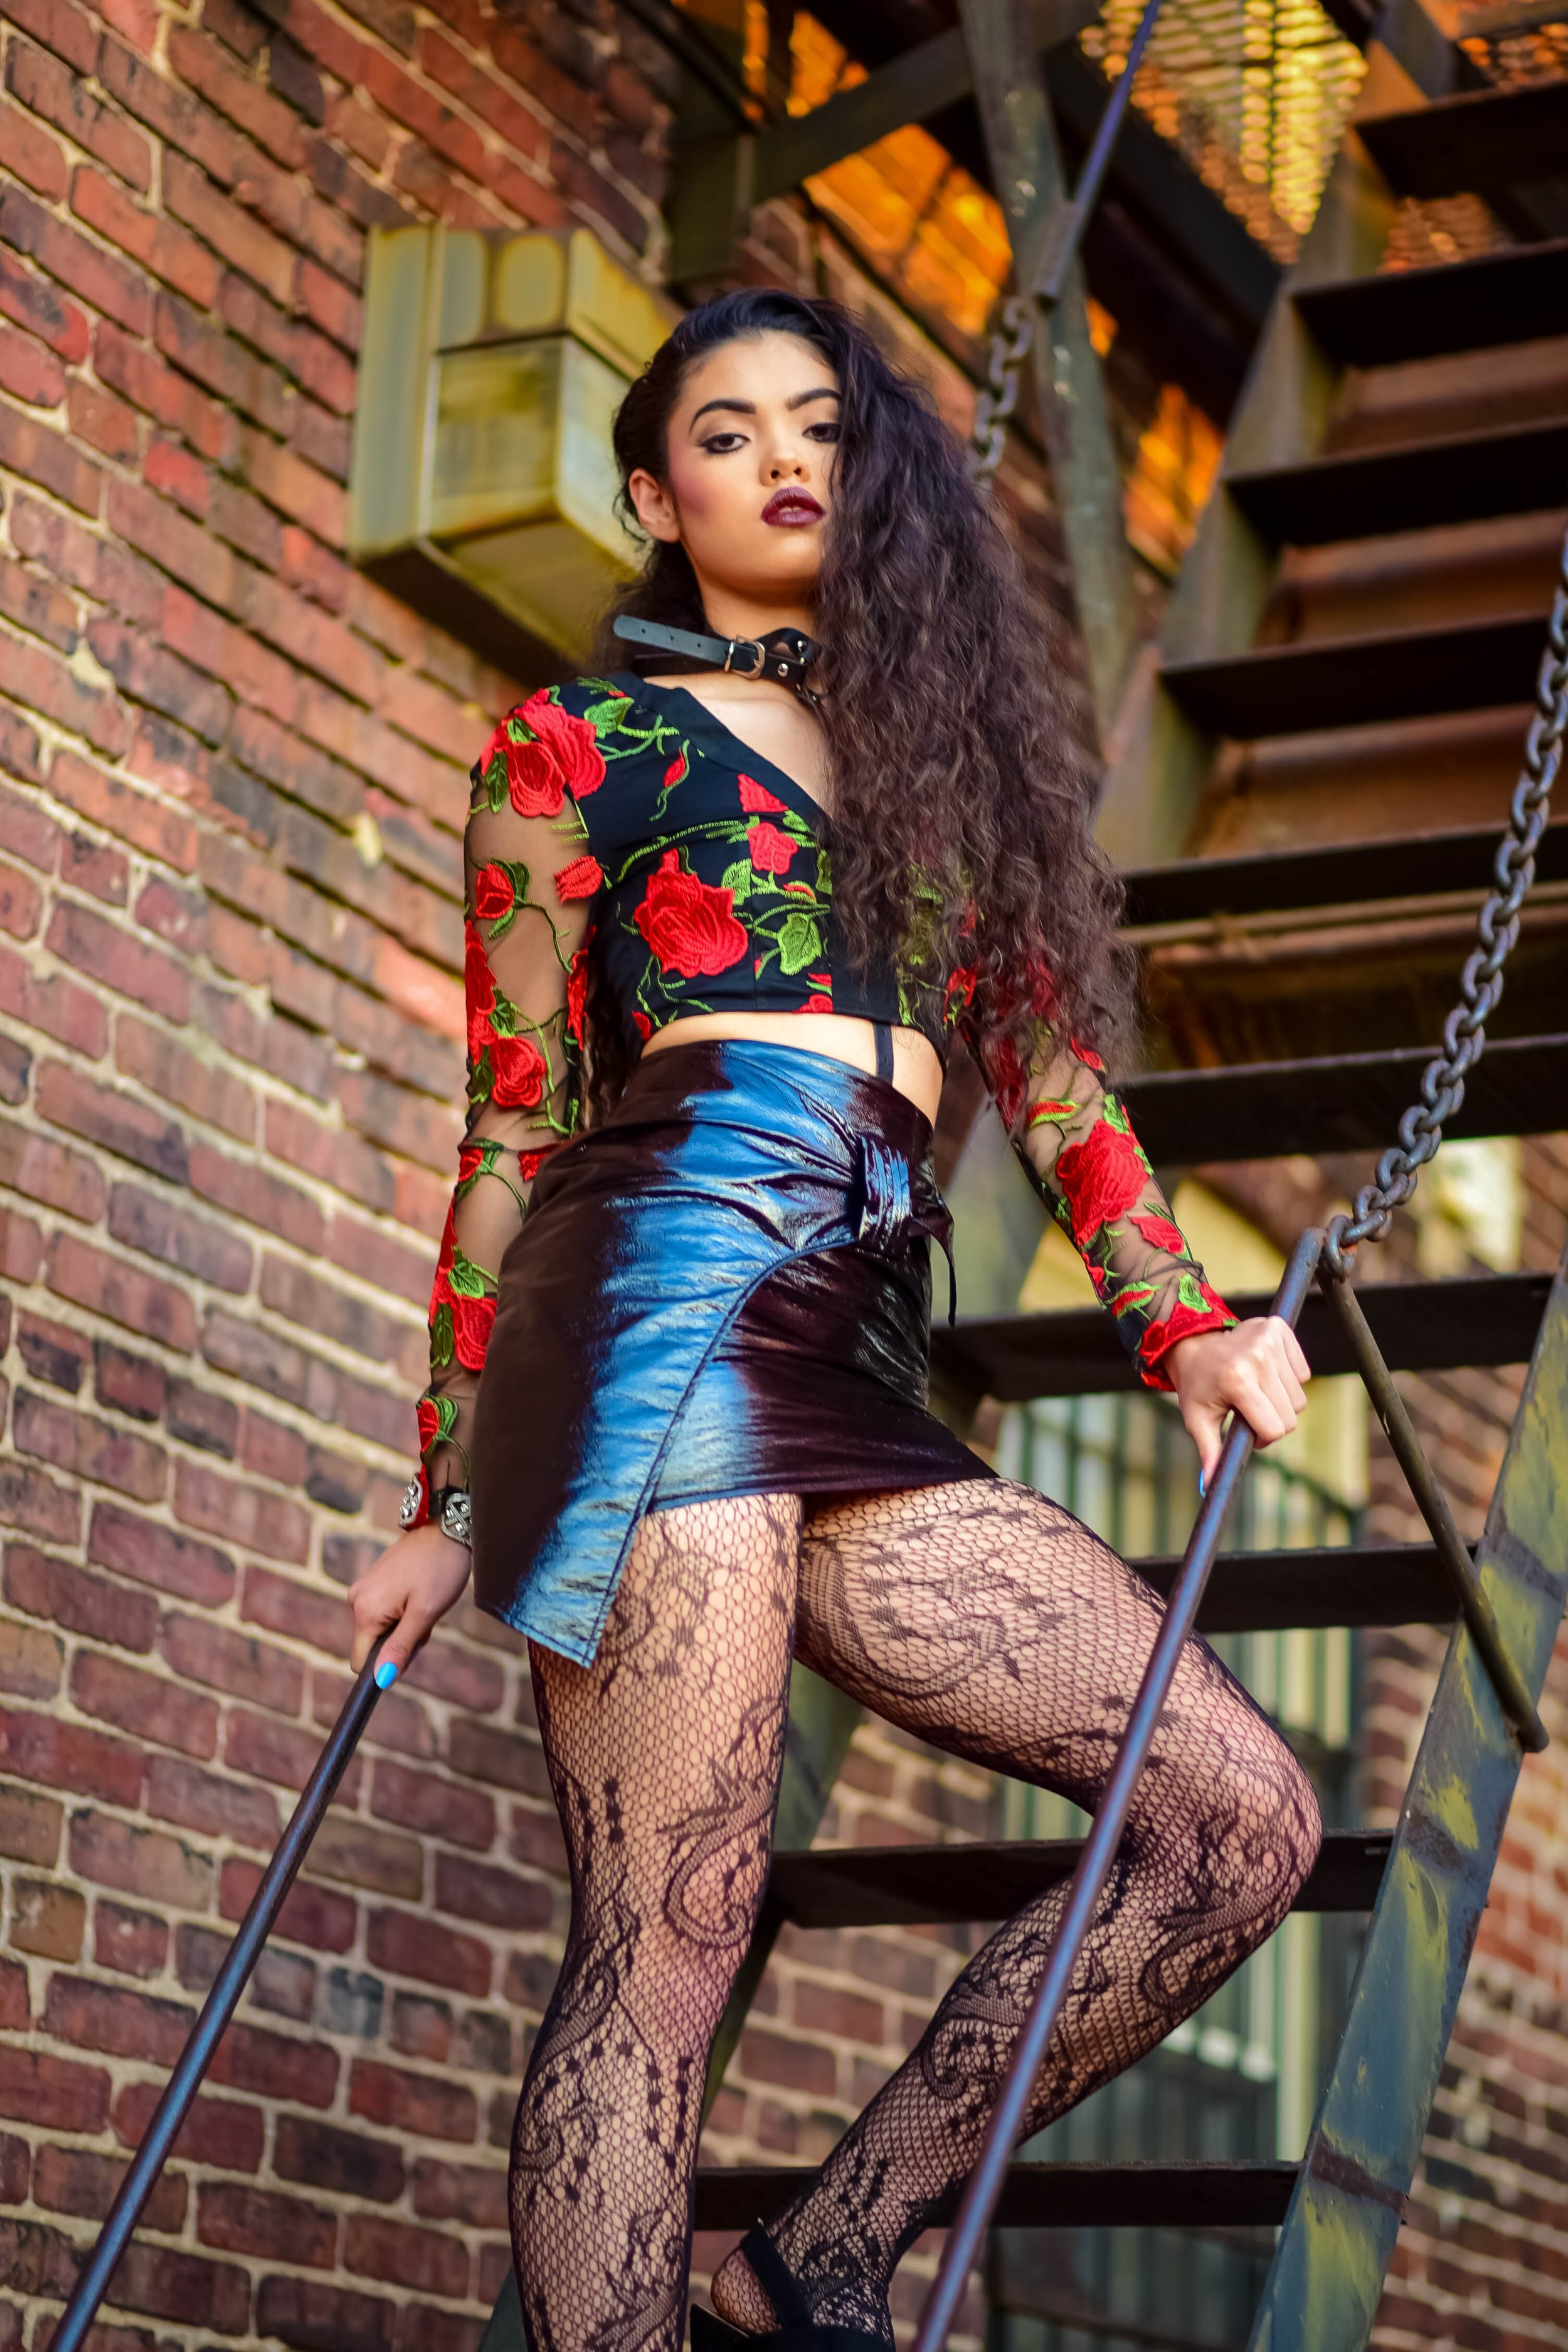 Get the Look:   Amanda wears a  black floral embroidered top ,  black faux leather tie belted mini ,  lace tights , harness choker.